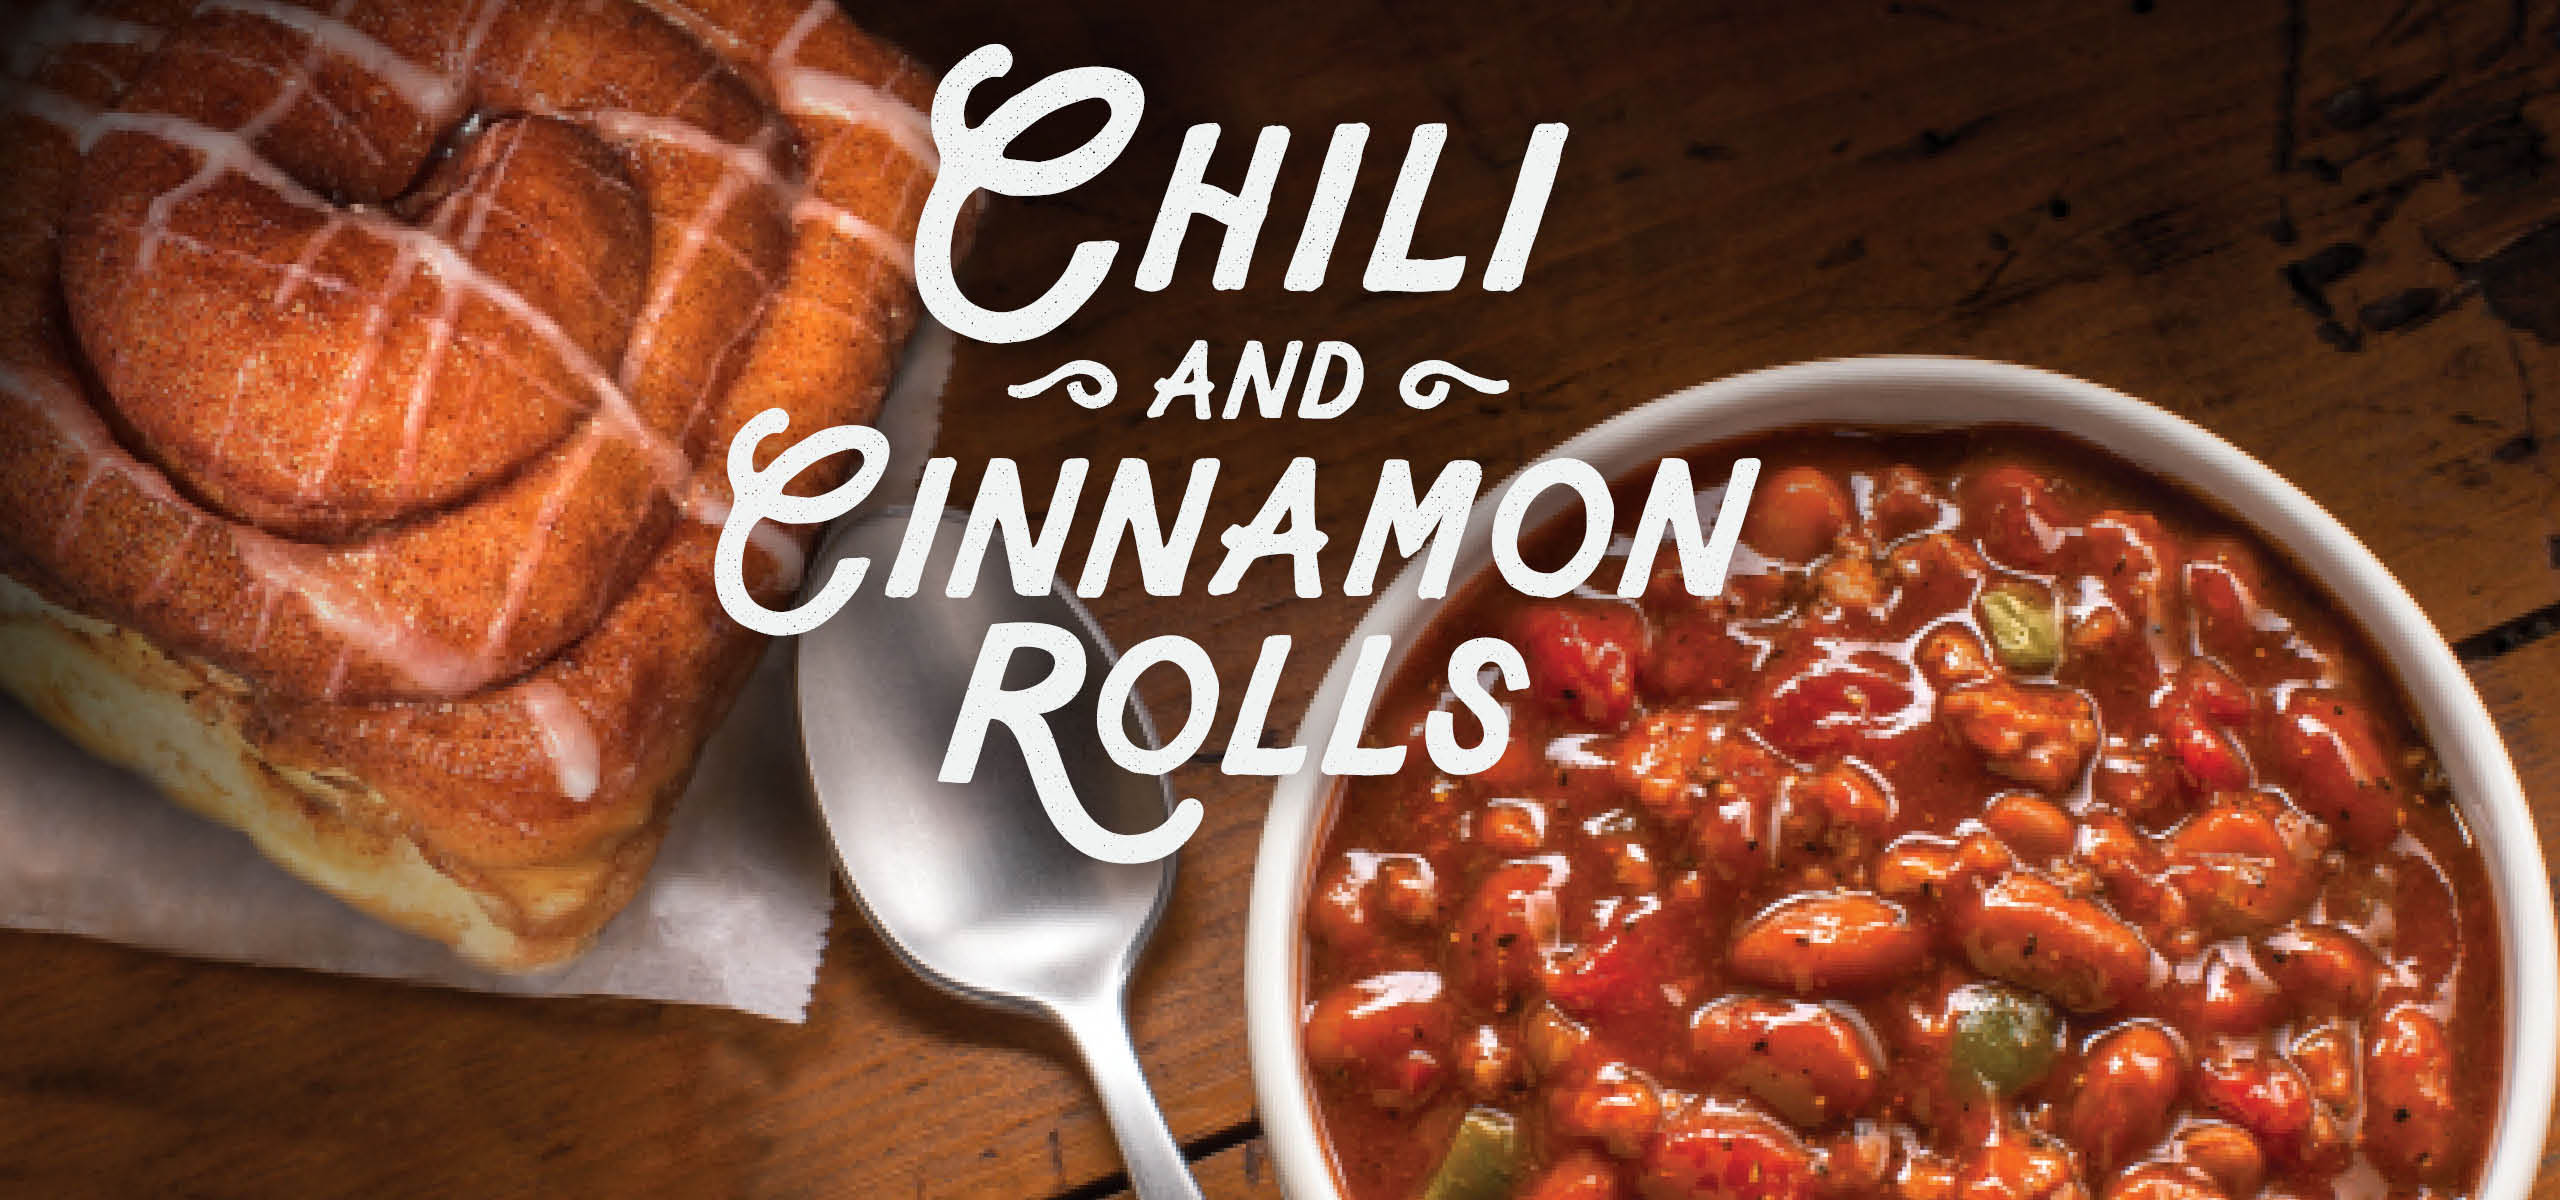 Homemade Chili and Cinnamon Rolls